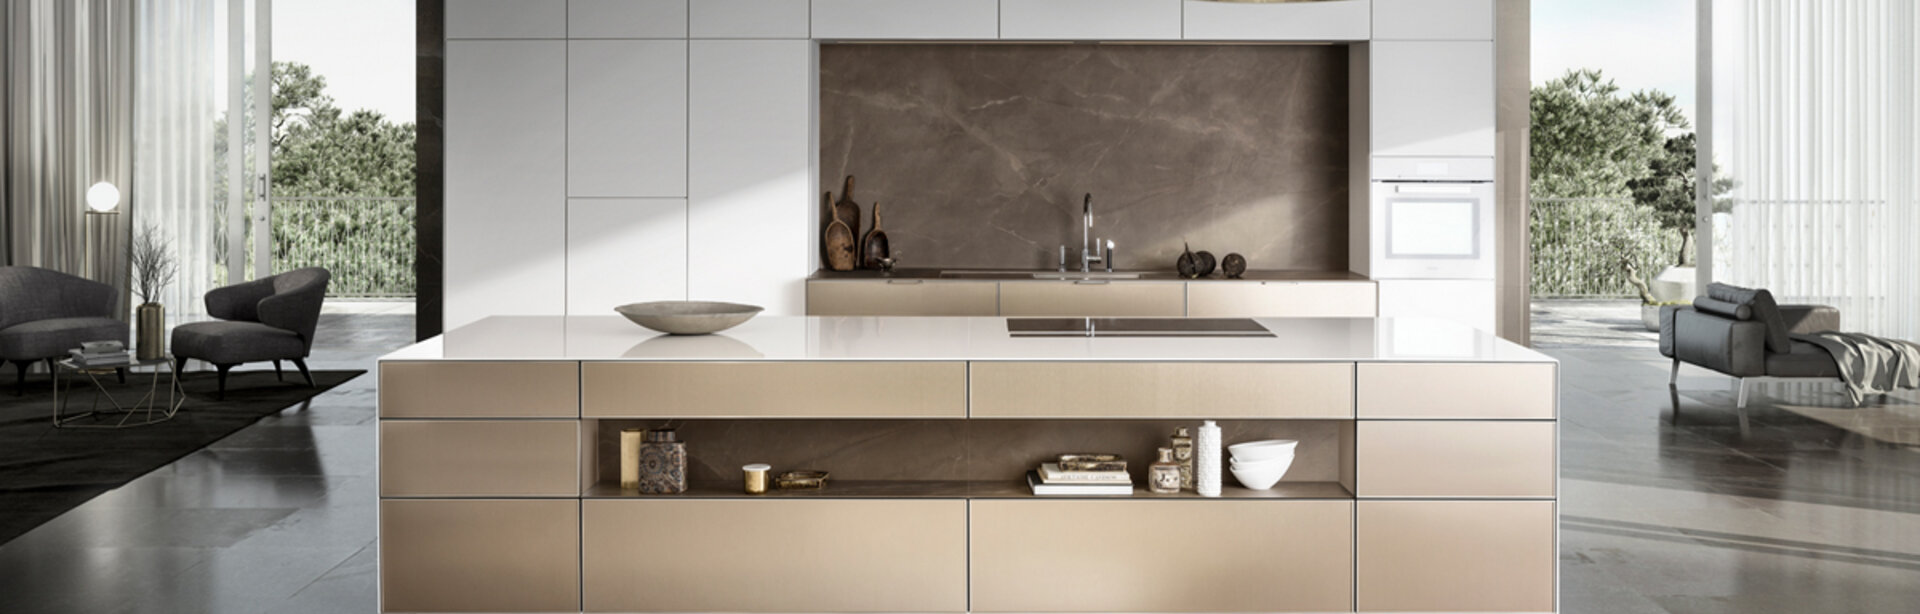 SieMatic Pure SE 3003 R1